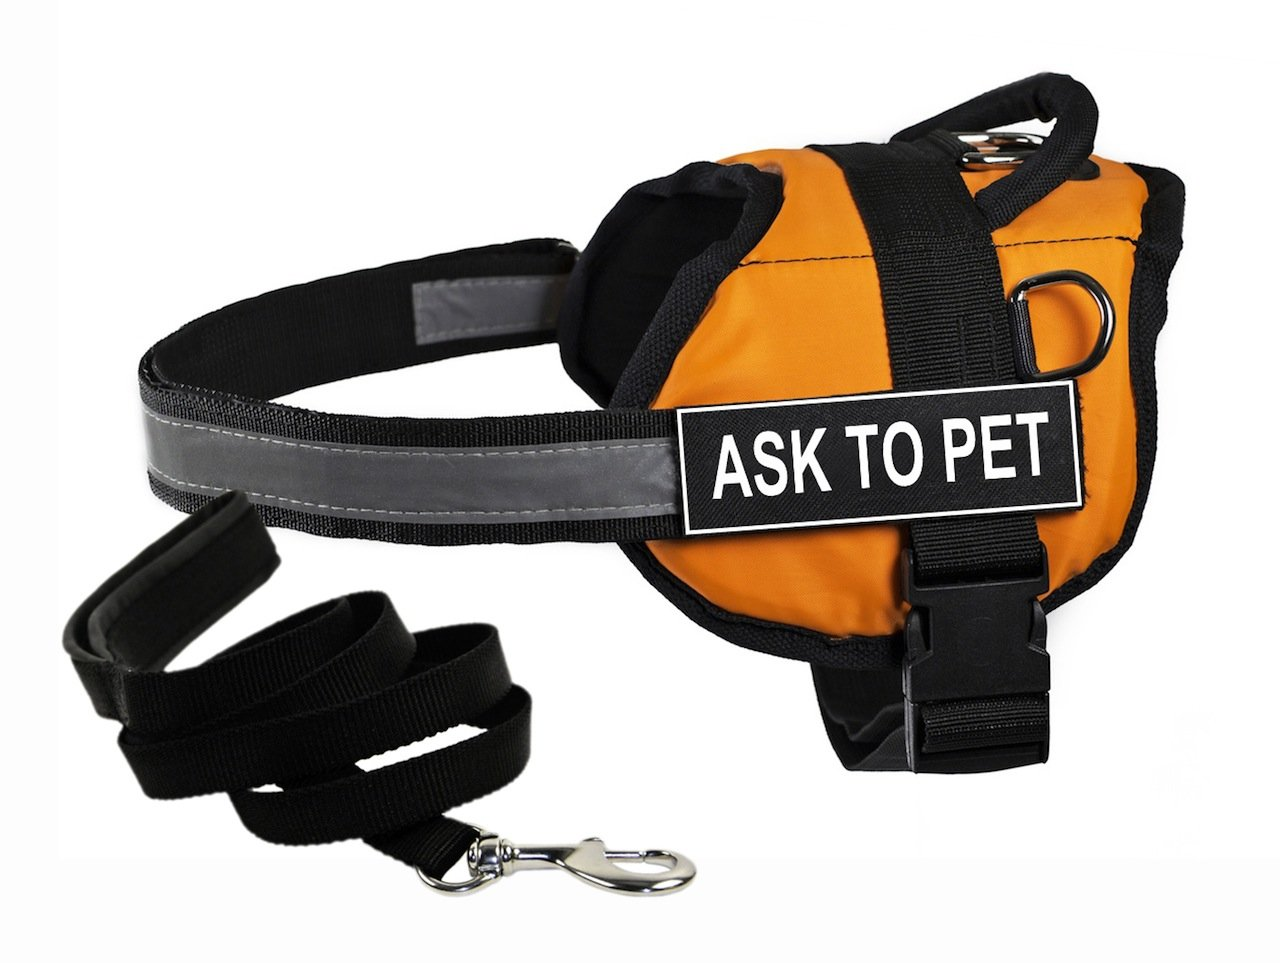 Dean & Tyler's DT Works orange Ask to PET  Harness with, X-Small, and Black 6 ft Padded Puppy Leash.